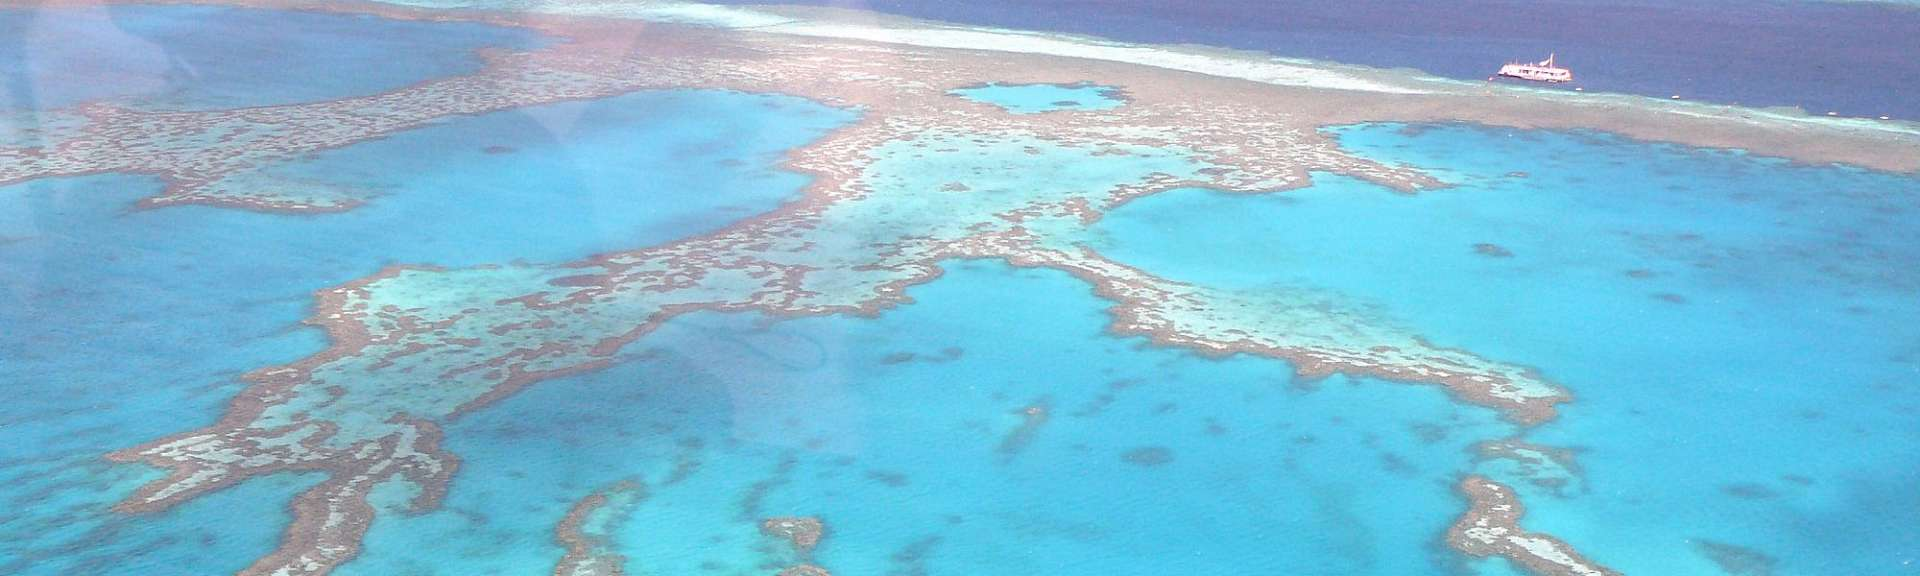 Great Barrier Reef: Reisefoto von